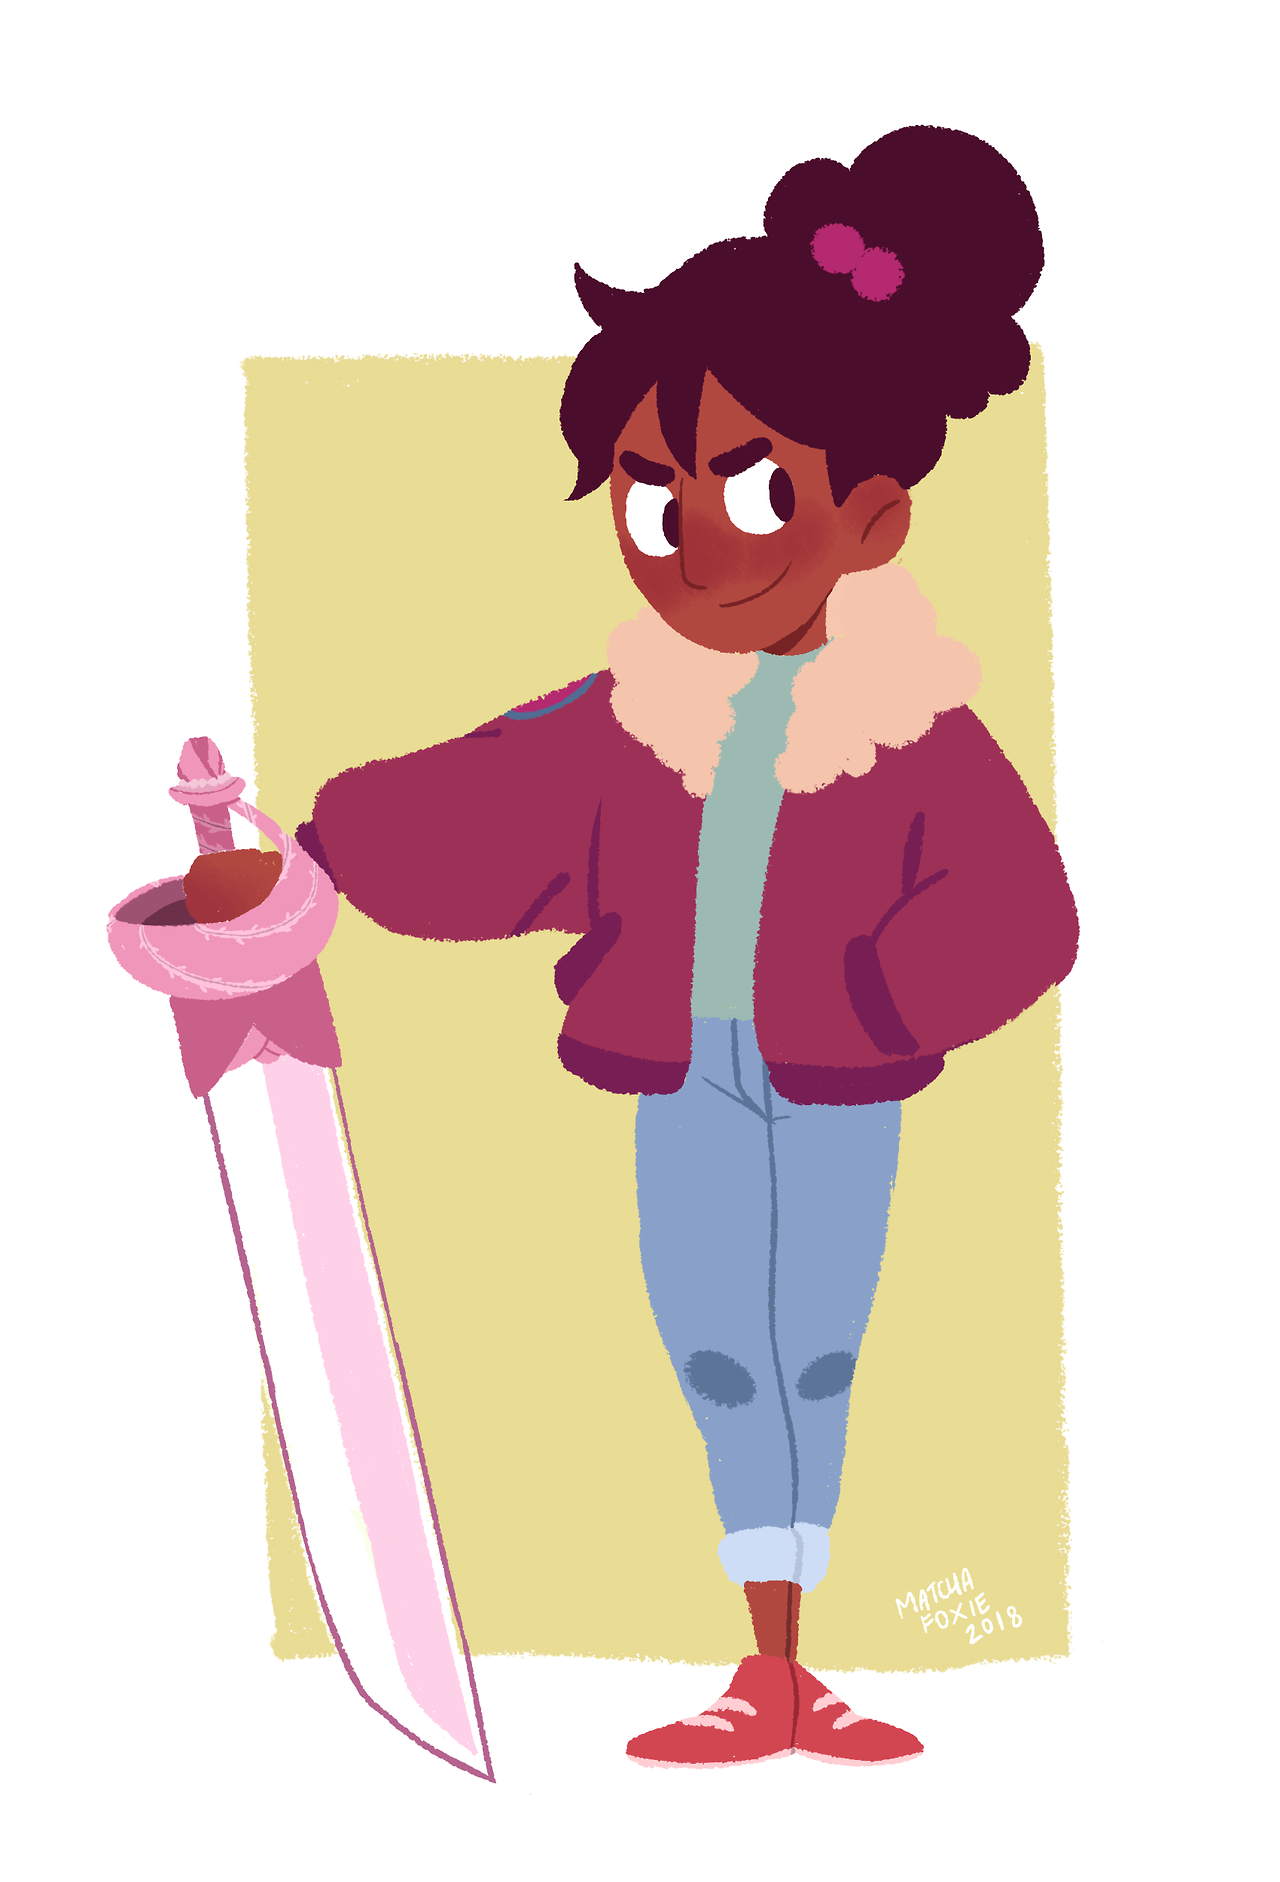 Hello and happy new here!!! I've been super busy with school lately, now I'm finally on break and can draw as much as I want!! Needless to say, I'm in love with Connie's new haircut and design!!! Hope...